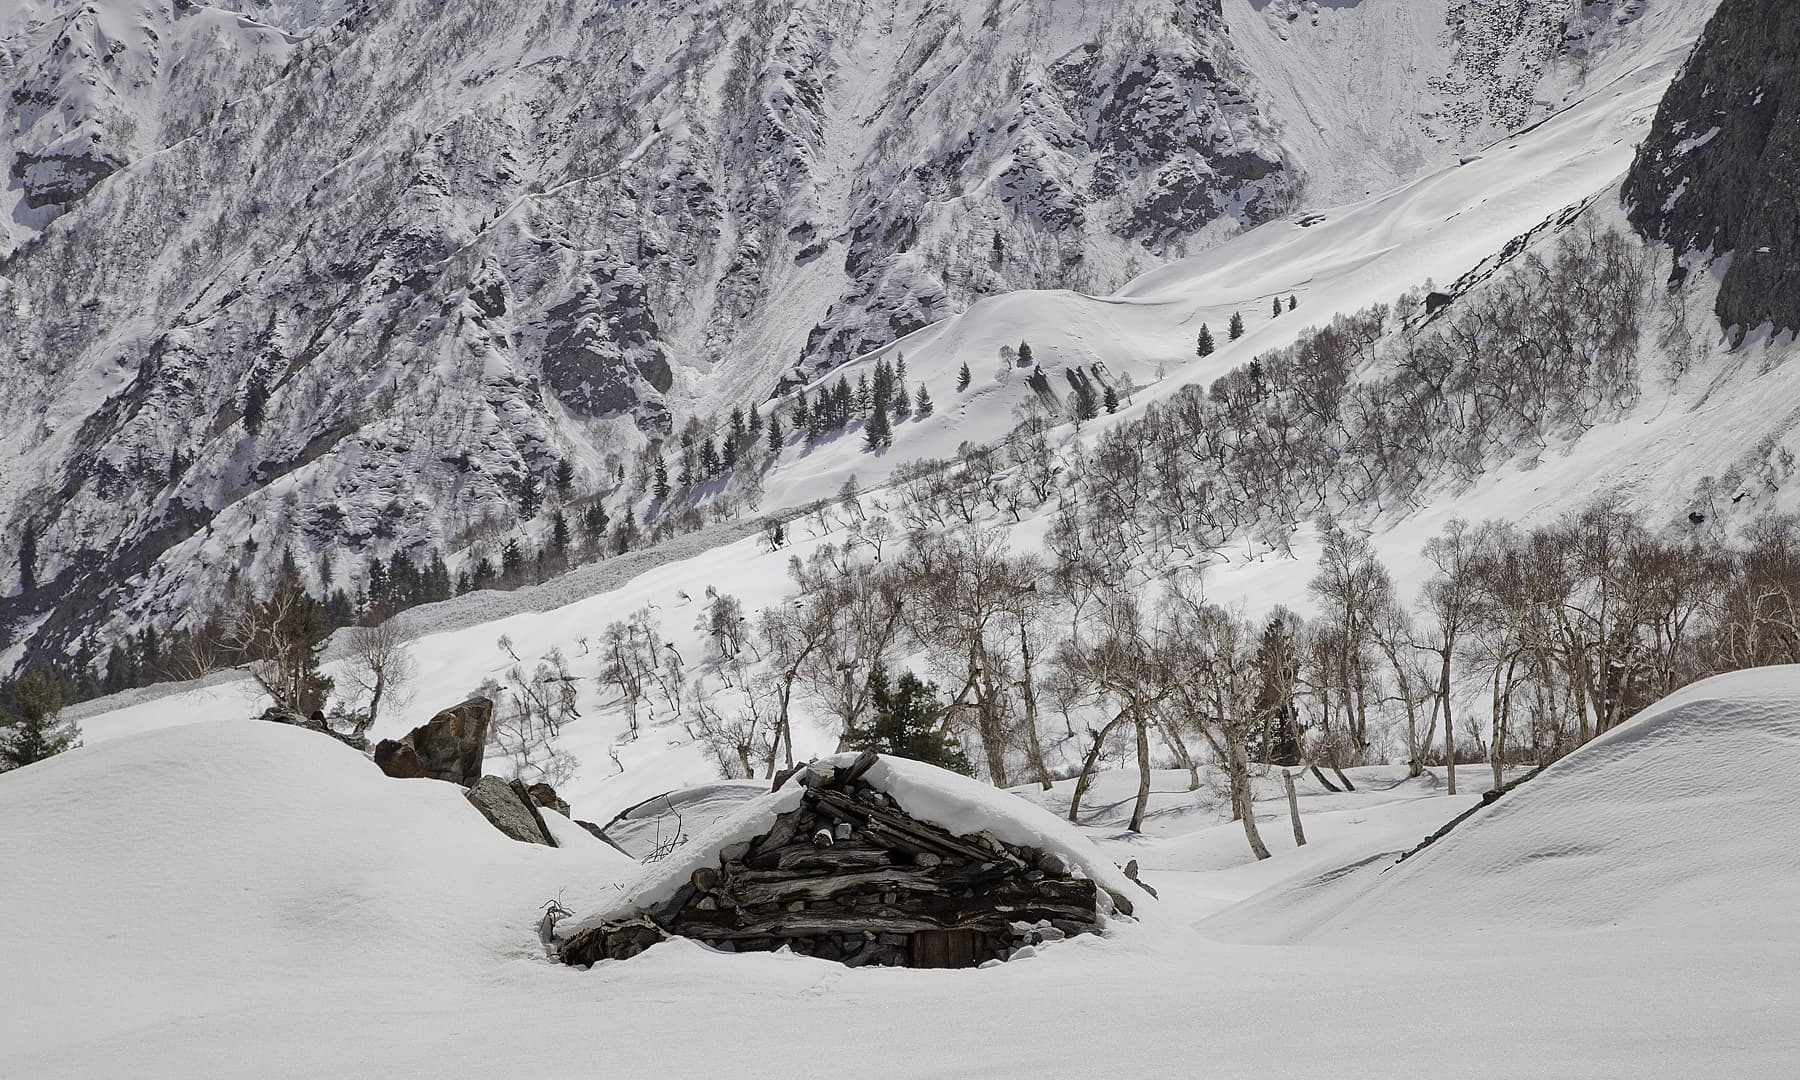 Naltar in winter.